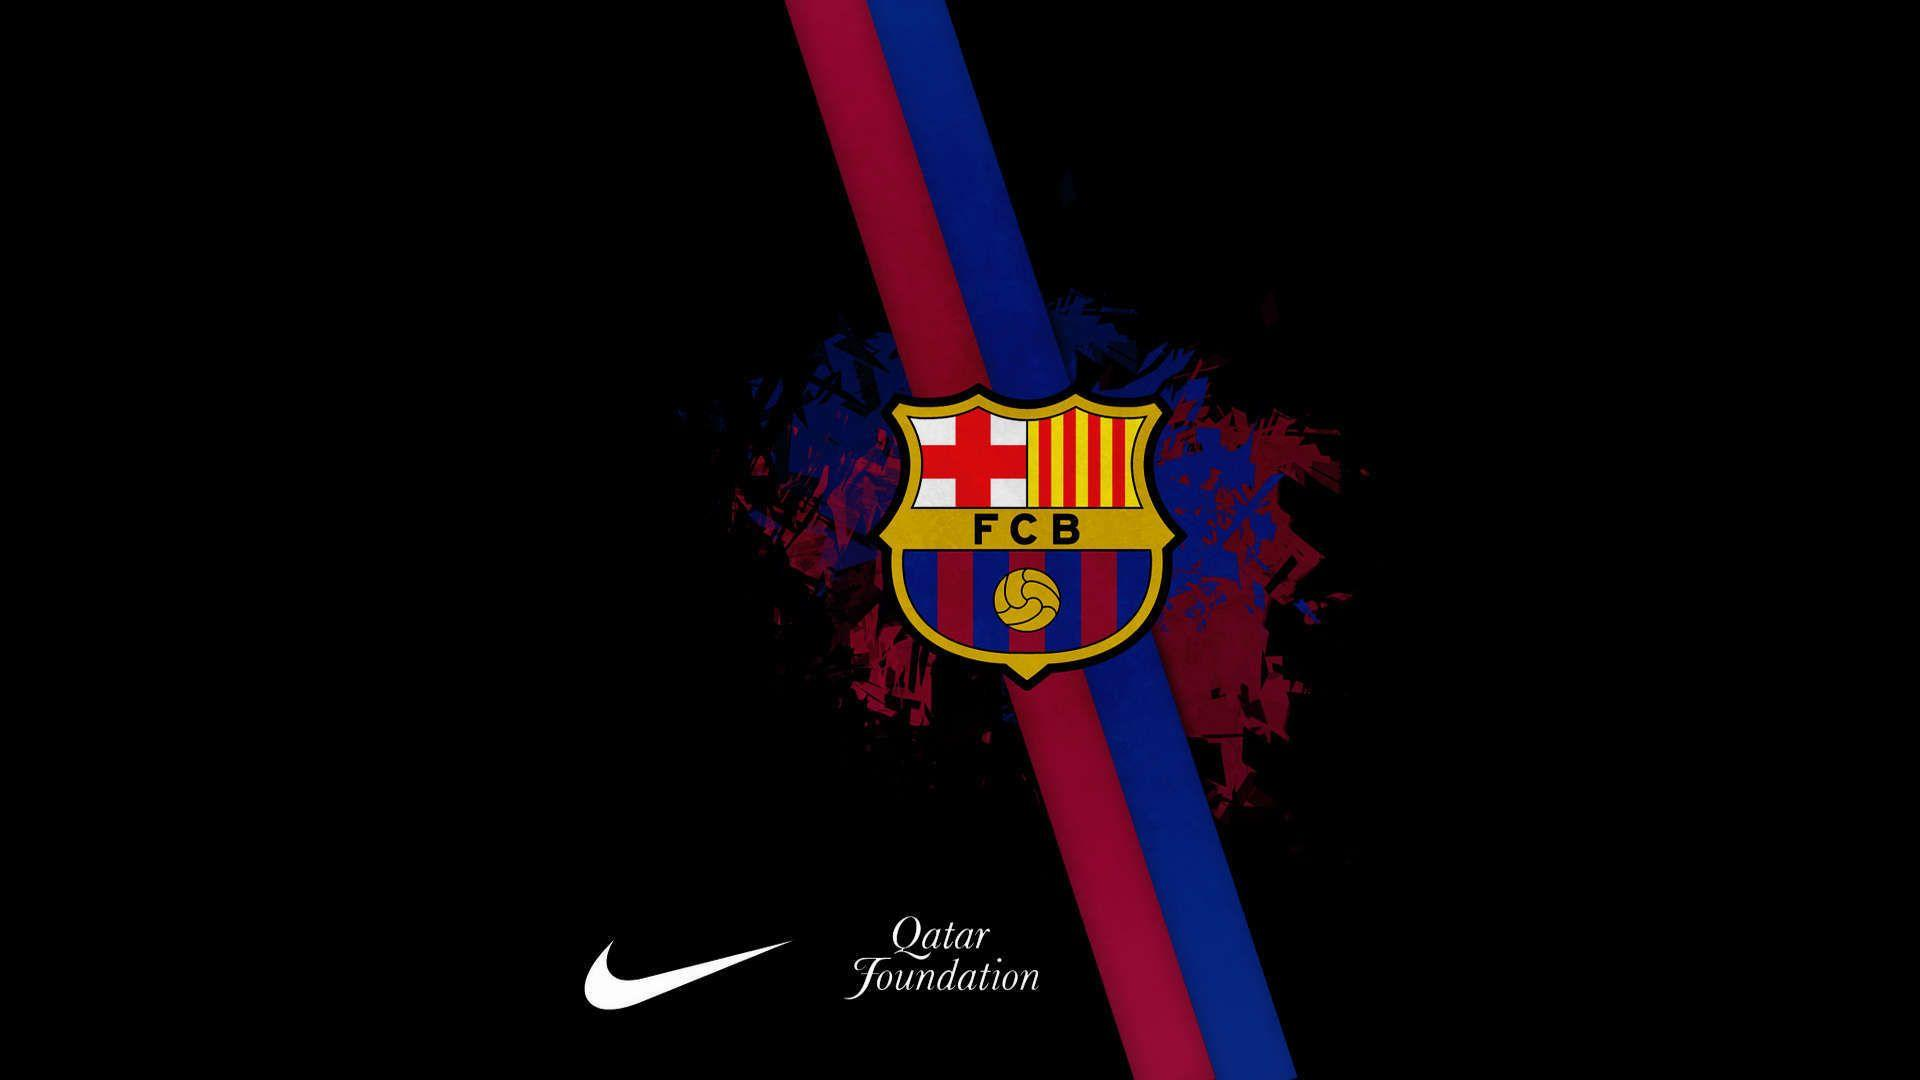 Wallpaper iphone barcelona - Fc Barcelona Wallpaper Hd Soccer Desktop